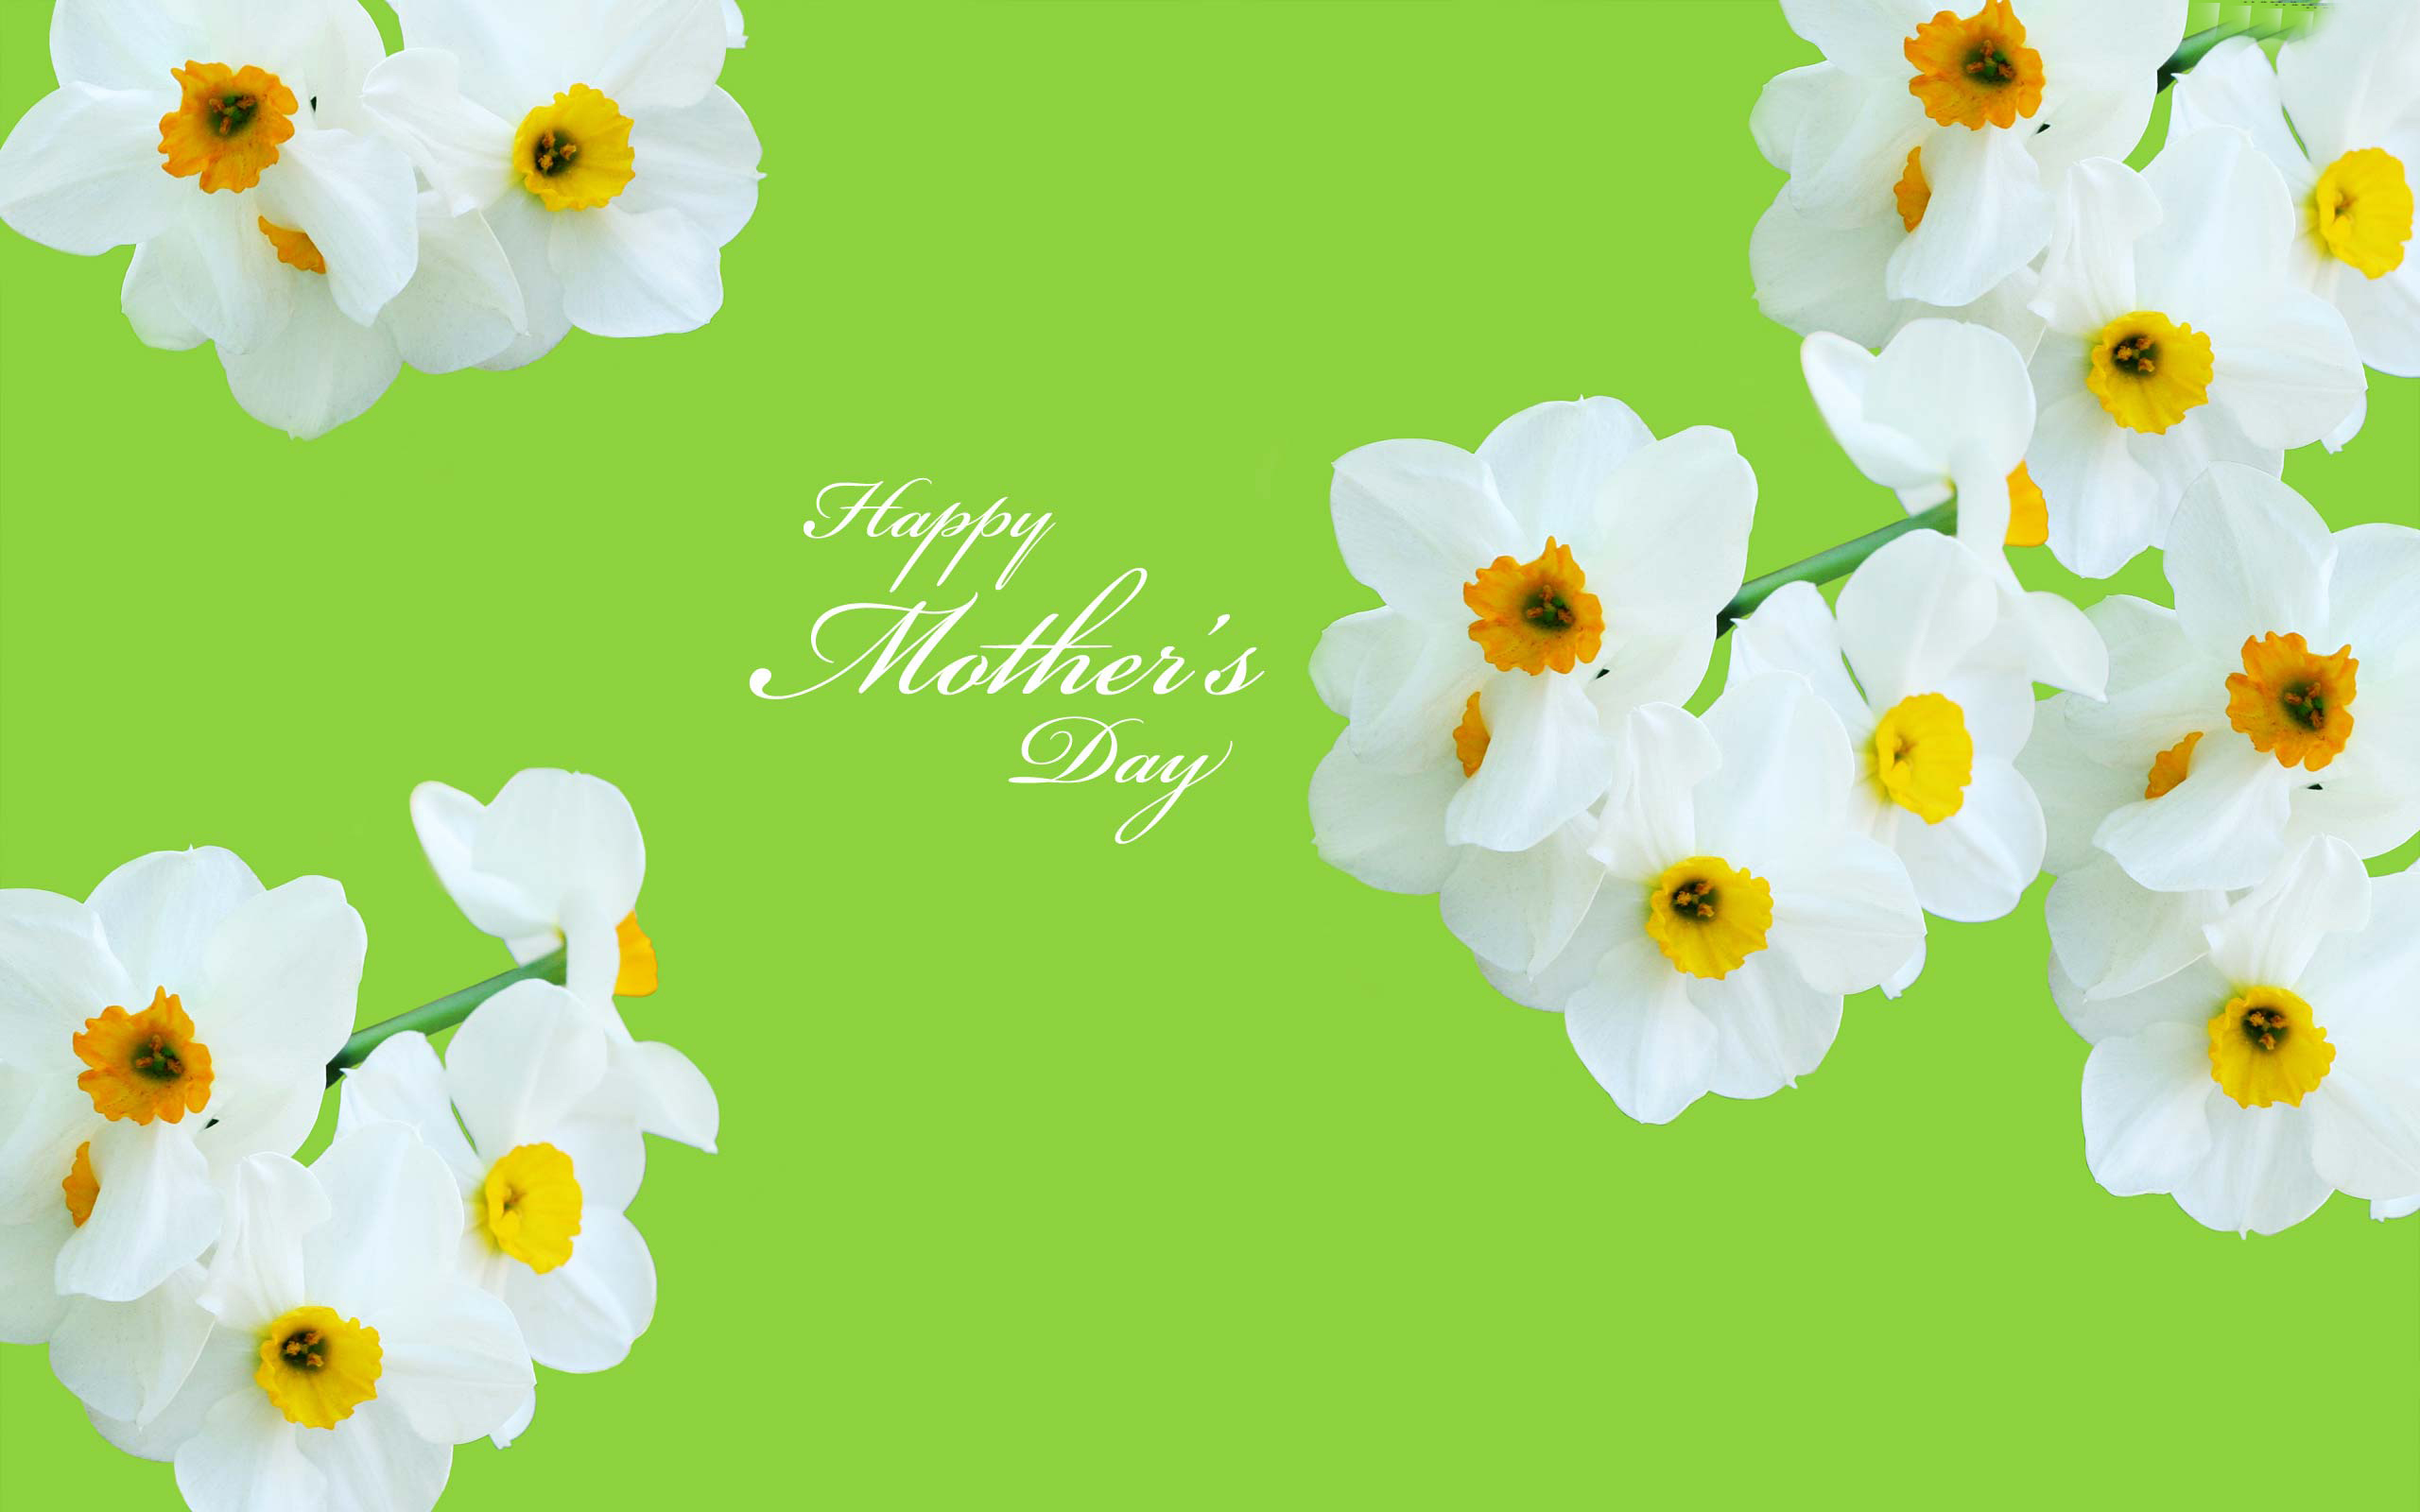 mothers day 2013 wallpaper viewing gallery